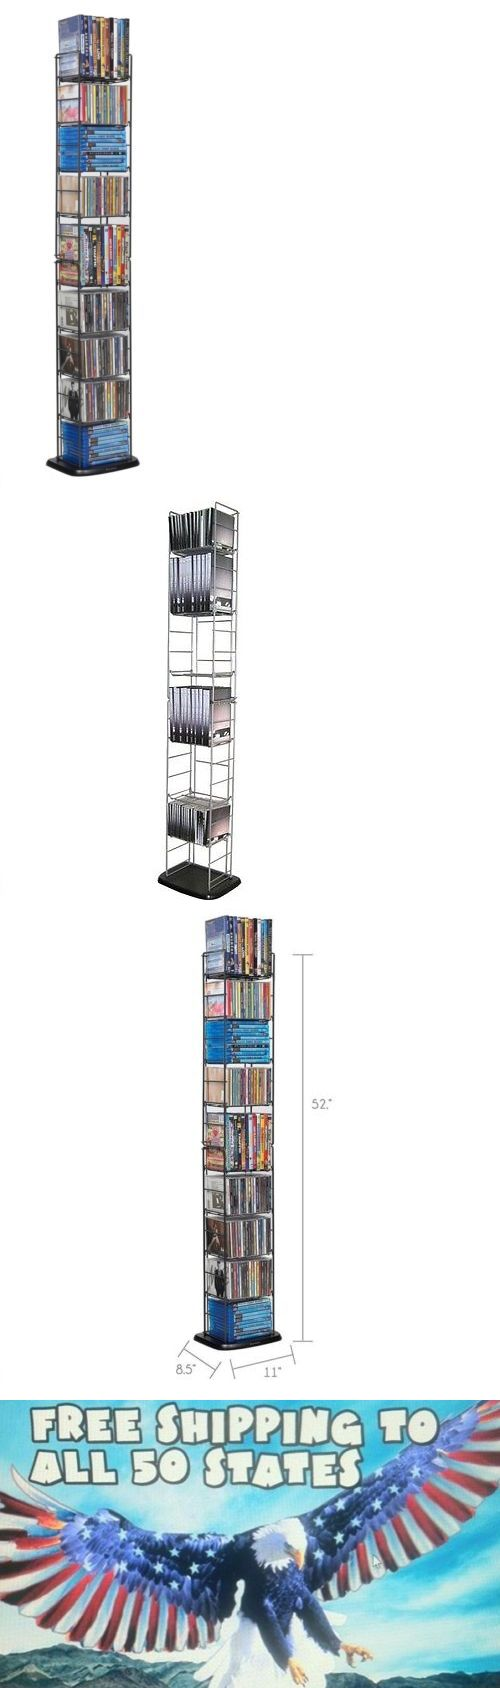 CD and Video Racks 22653: Cd Tower Dvd Blu-Ray Disc Media Folding Rack Storage Holder Organizer Wall Stand -> BUY IT NOW ONLY: $37.58 on eBay!